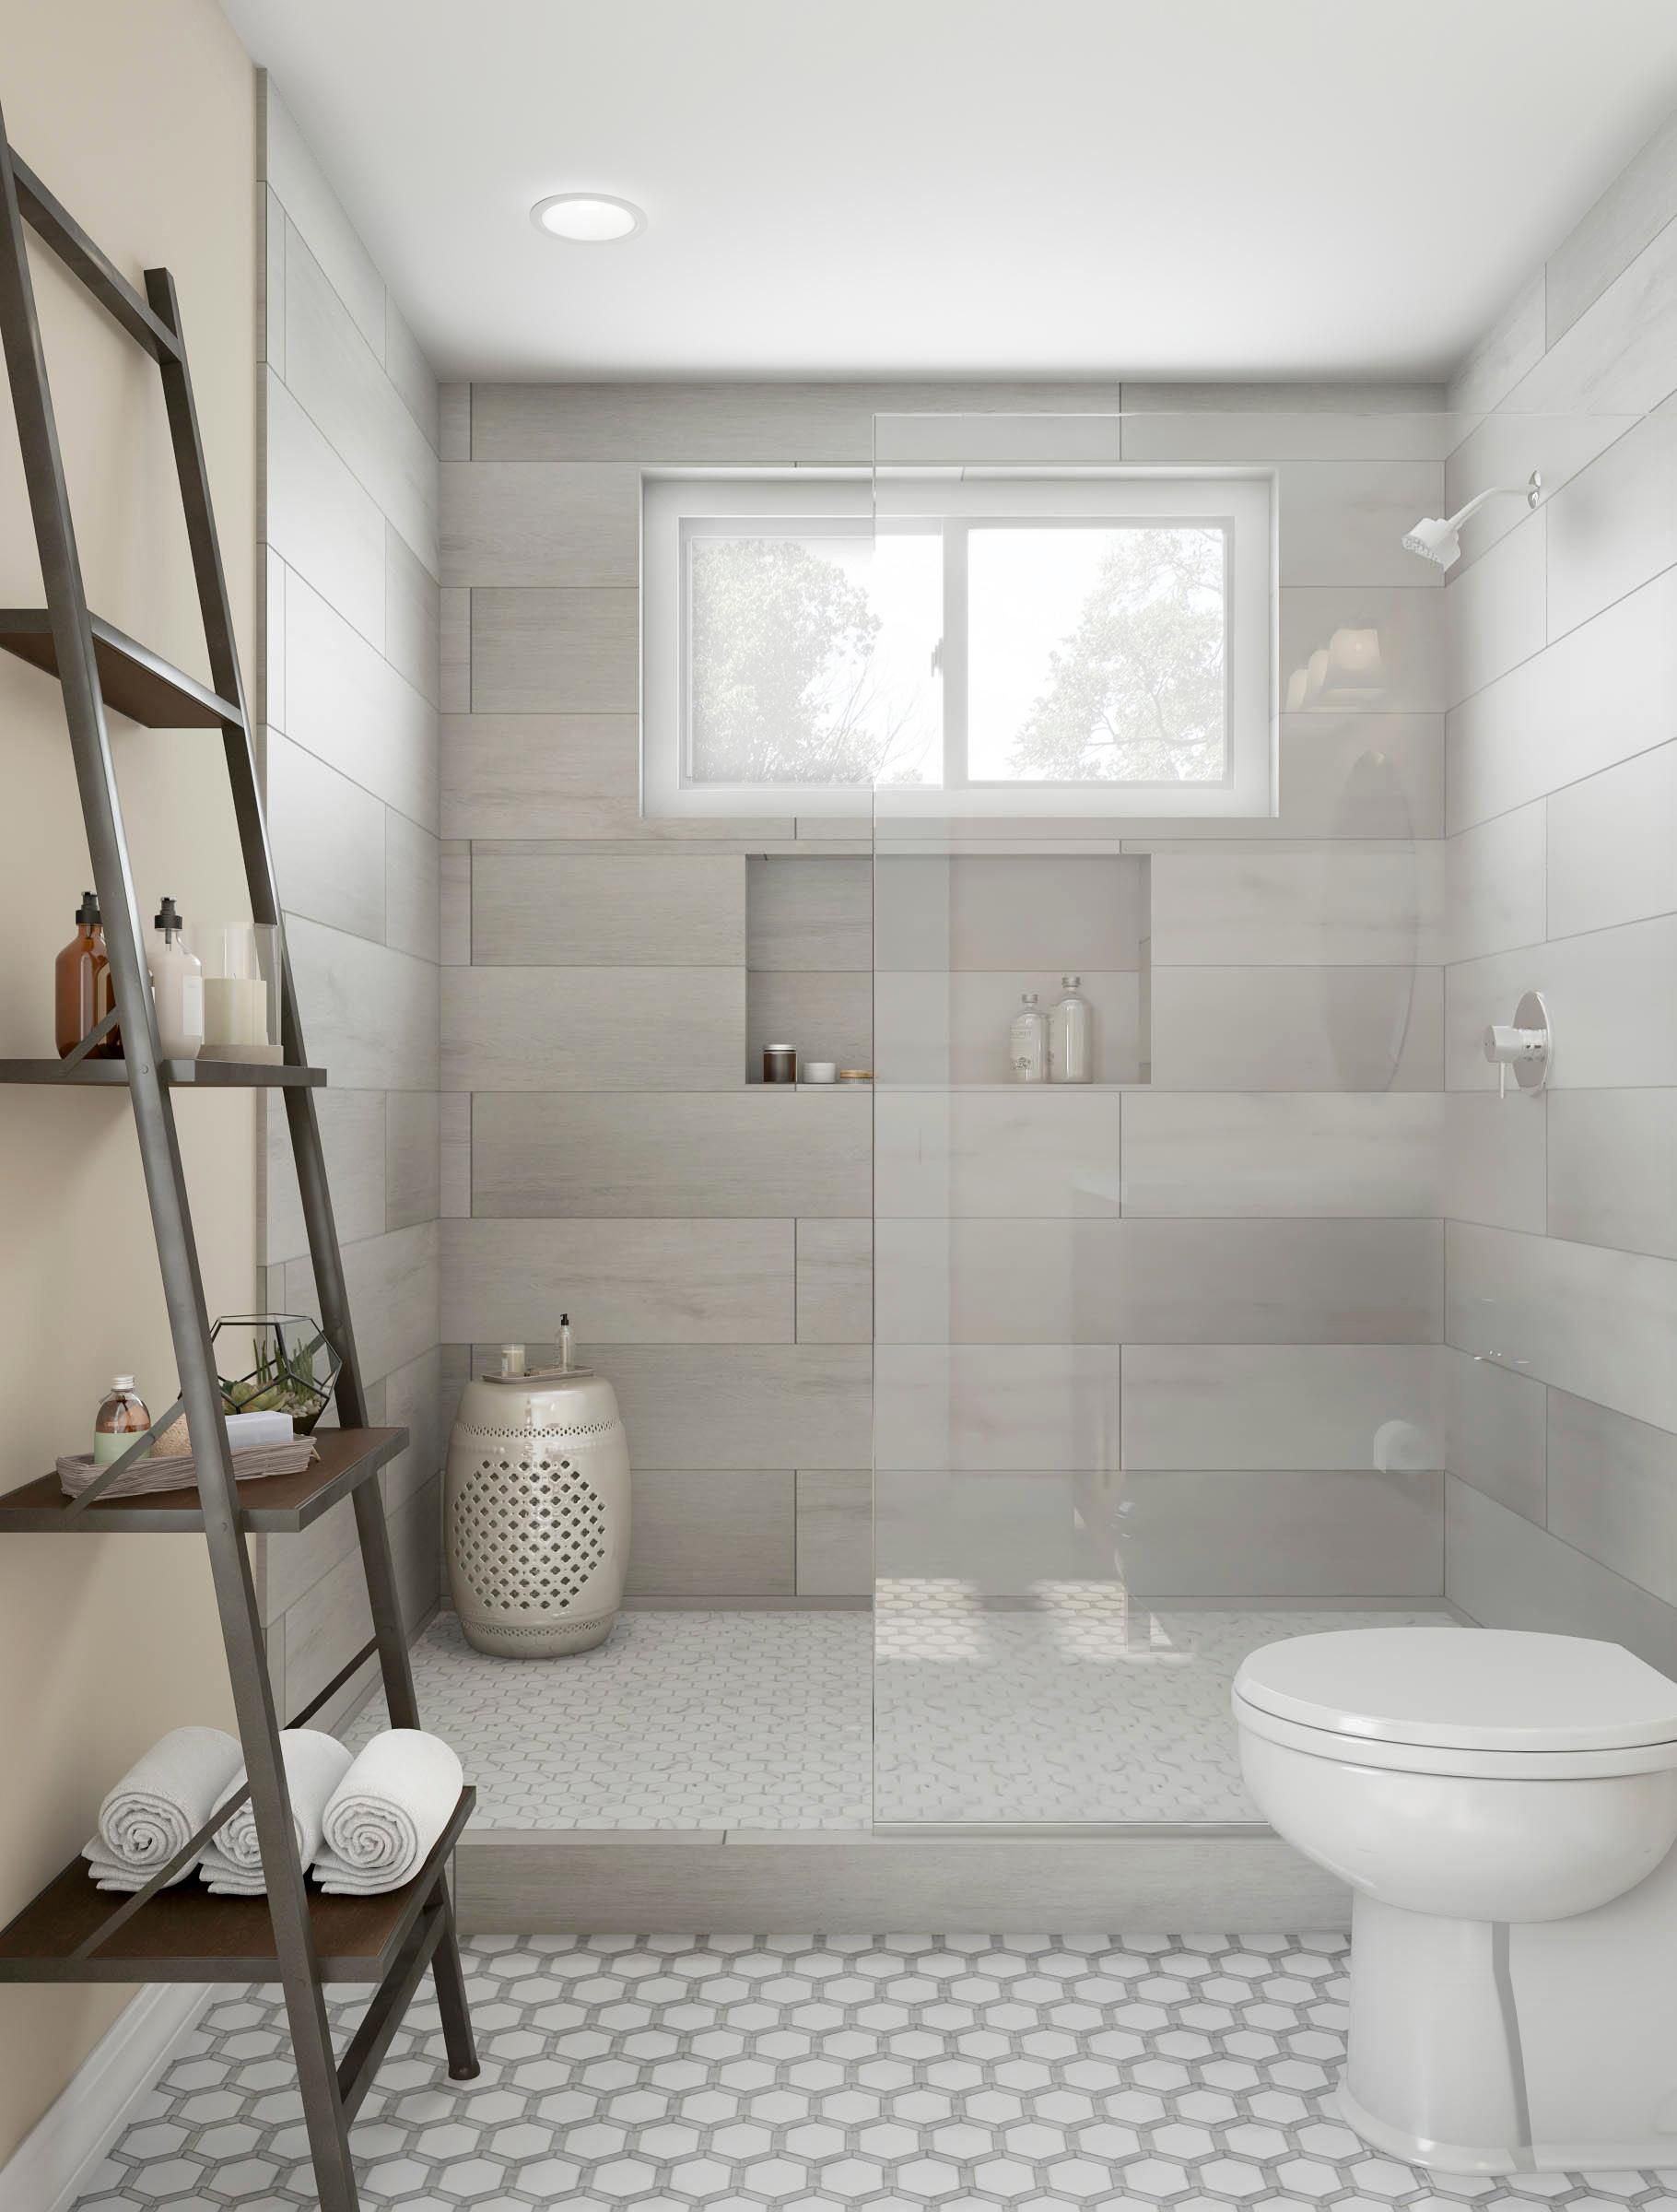 A Walk In Shower Creates A Nice Roomy Feeling For Your Bathroom Remodeling Project Walkinsho Master Bathroom Shower Bathroom Remodel Shower Bathrooms Remodel